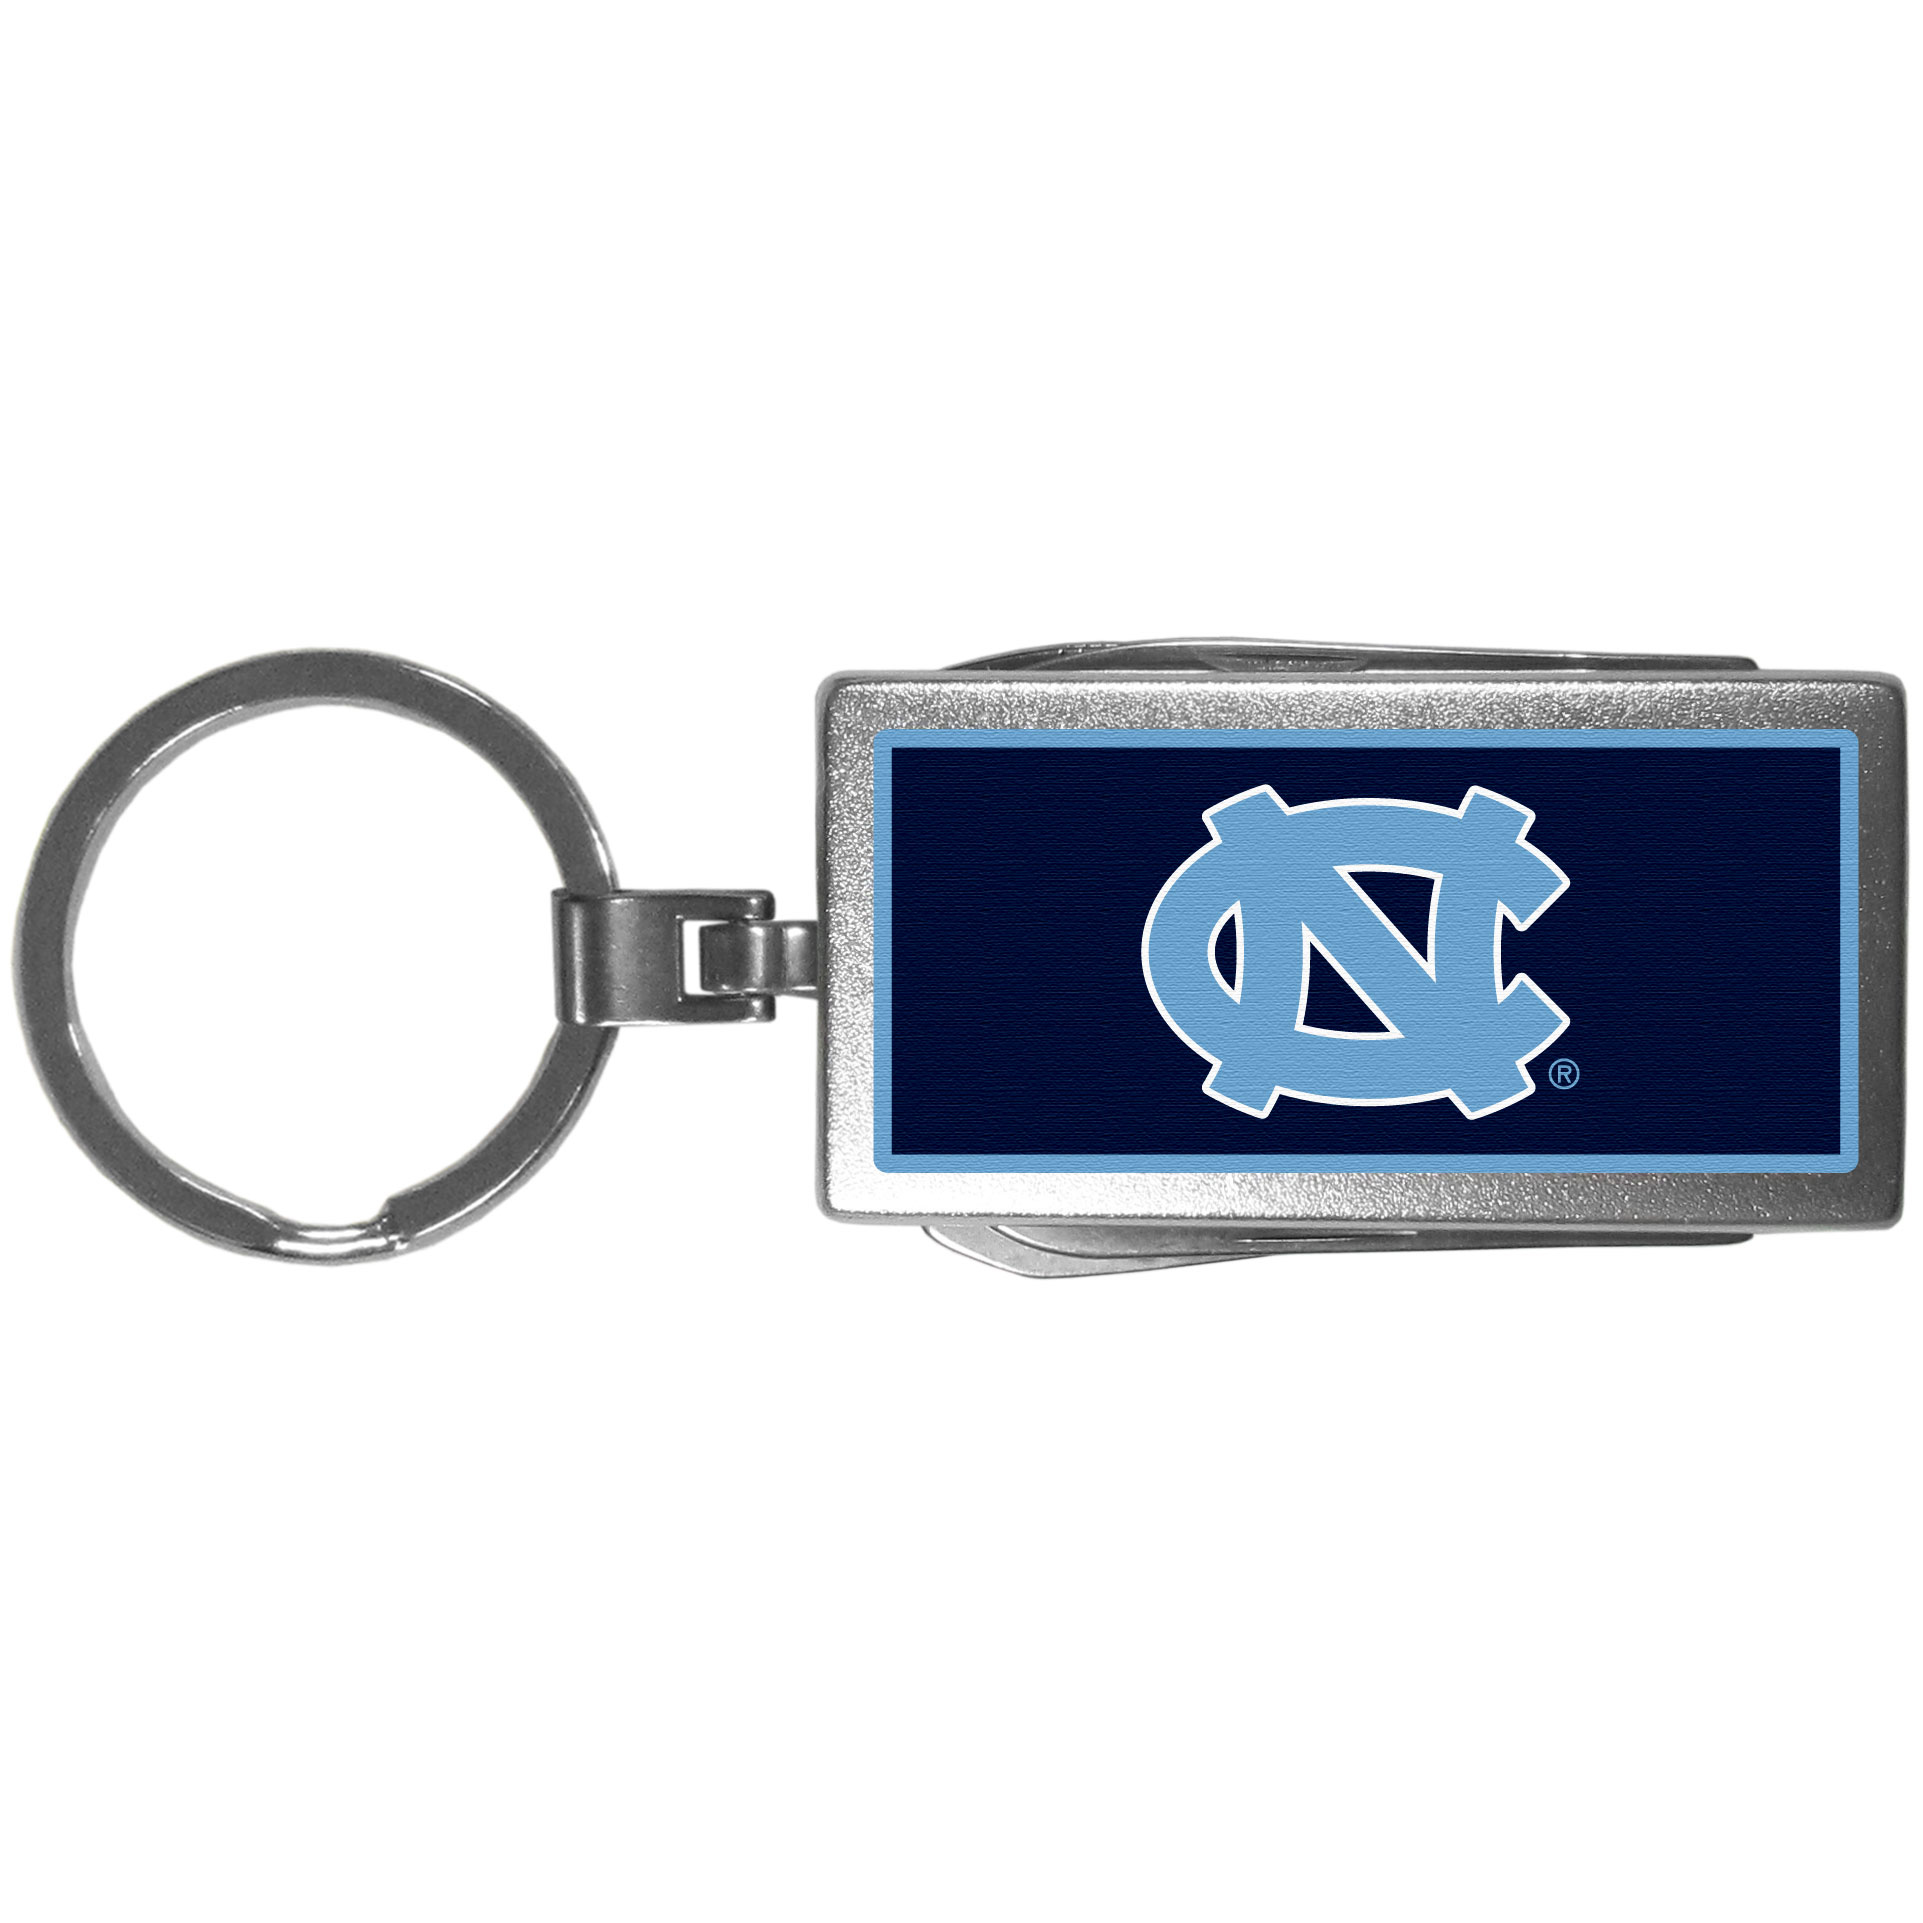 N. Carolina Tar Heels Multi-tool Key Chain, Logo - Be the hero at the tailgate, camping, or on a Friday night with your N. Carolina Tar Heels Multi-Tool Keychain which comes complete with bottle opener, scissors, knife, nail file and screw driver. Be it opening a package or a beverage Siskiyou's Multi-Tool Keychain goes wherever your keys do. The keychain hangs at 4 inches long when closed.